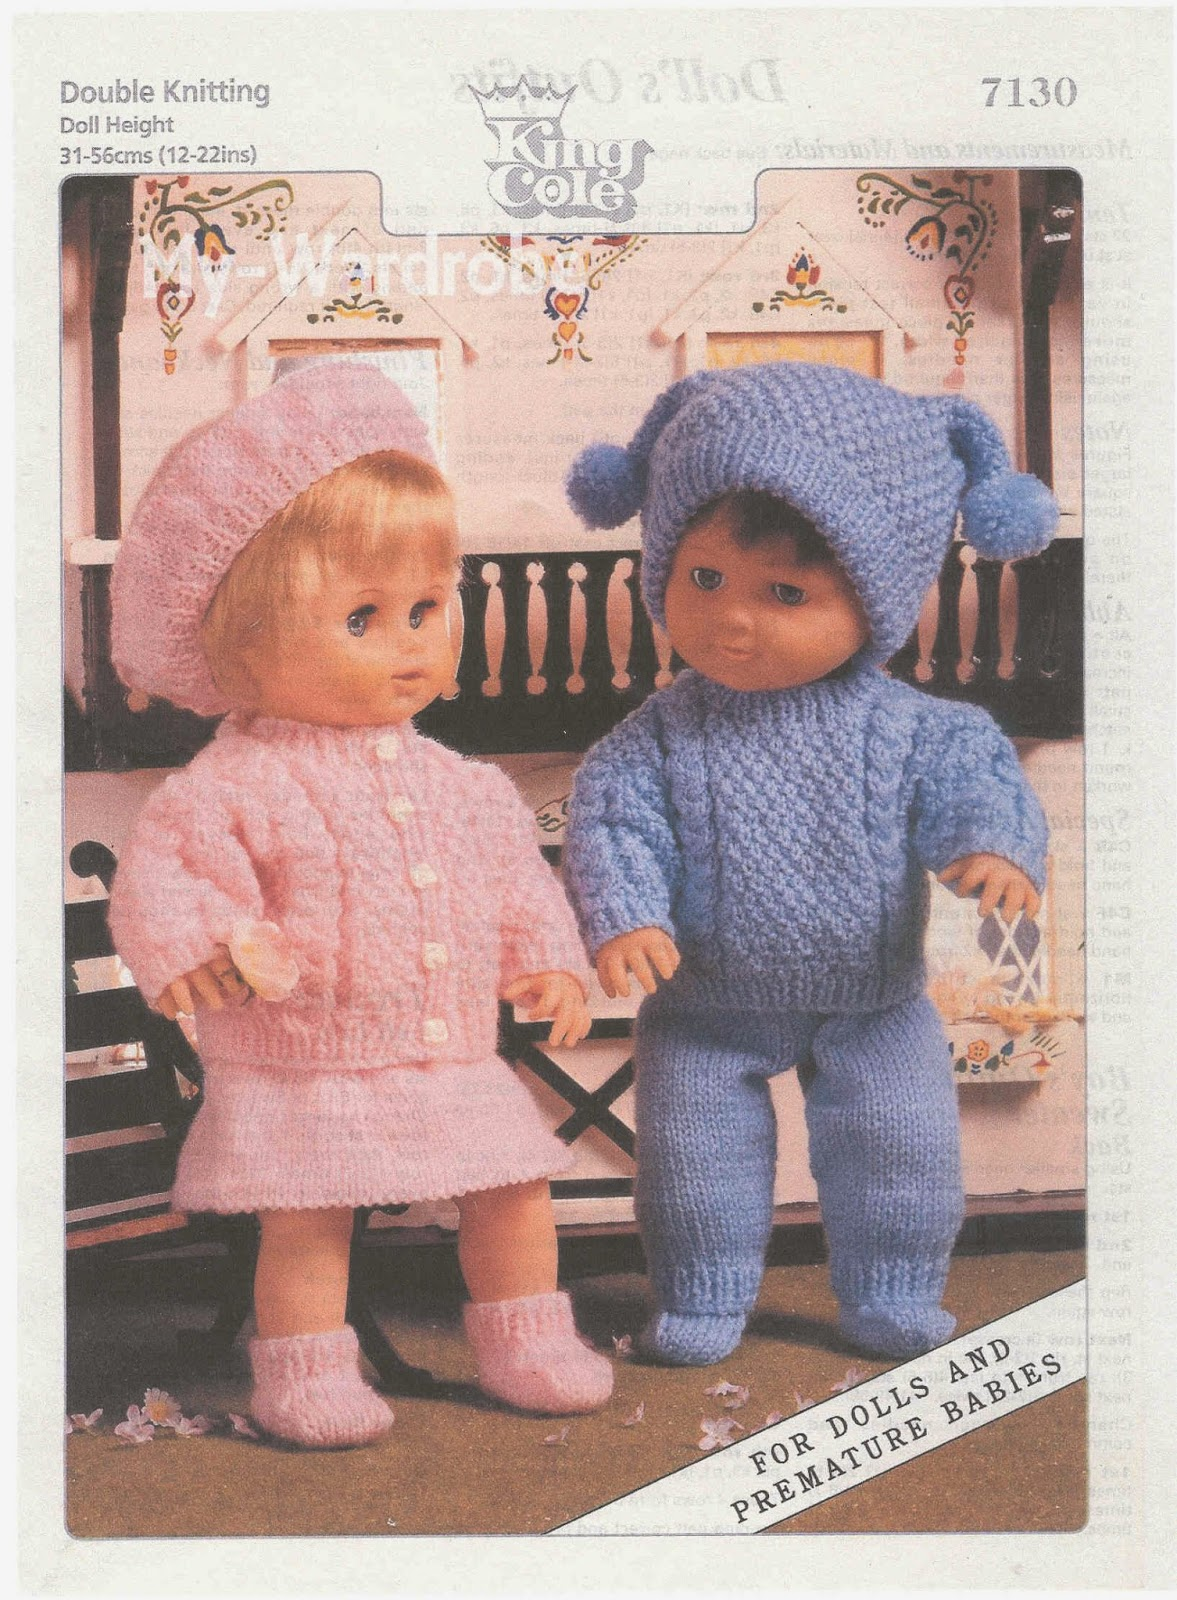 King Cole Campervan Knitting Pattern : Herbies Doll Sewing, Knitting & Crochet Pattern Collection: Vintage ...